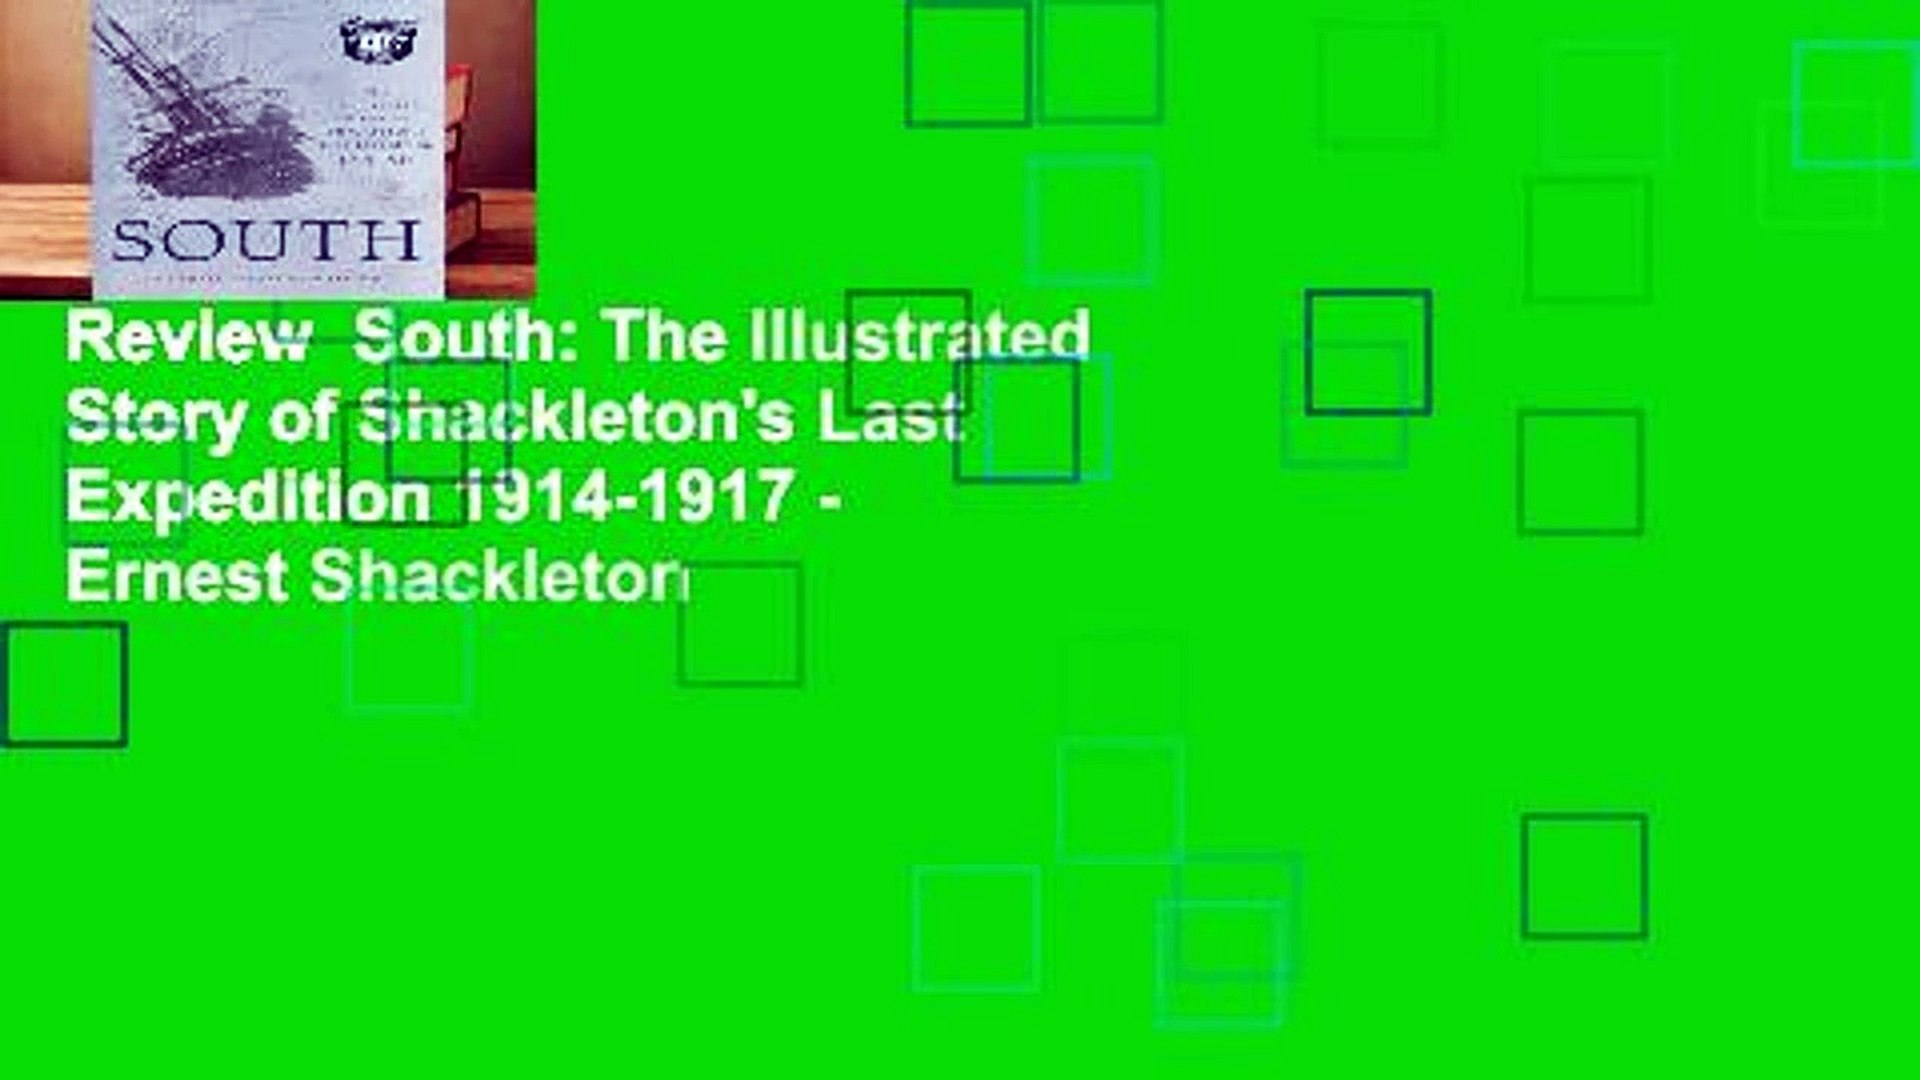 South The Illustrated Story of Shackletons Last Expedition 1914-1917